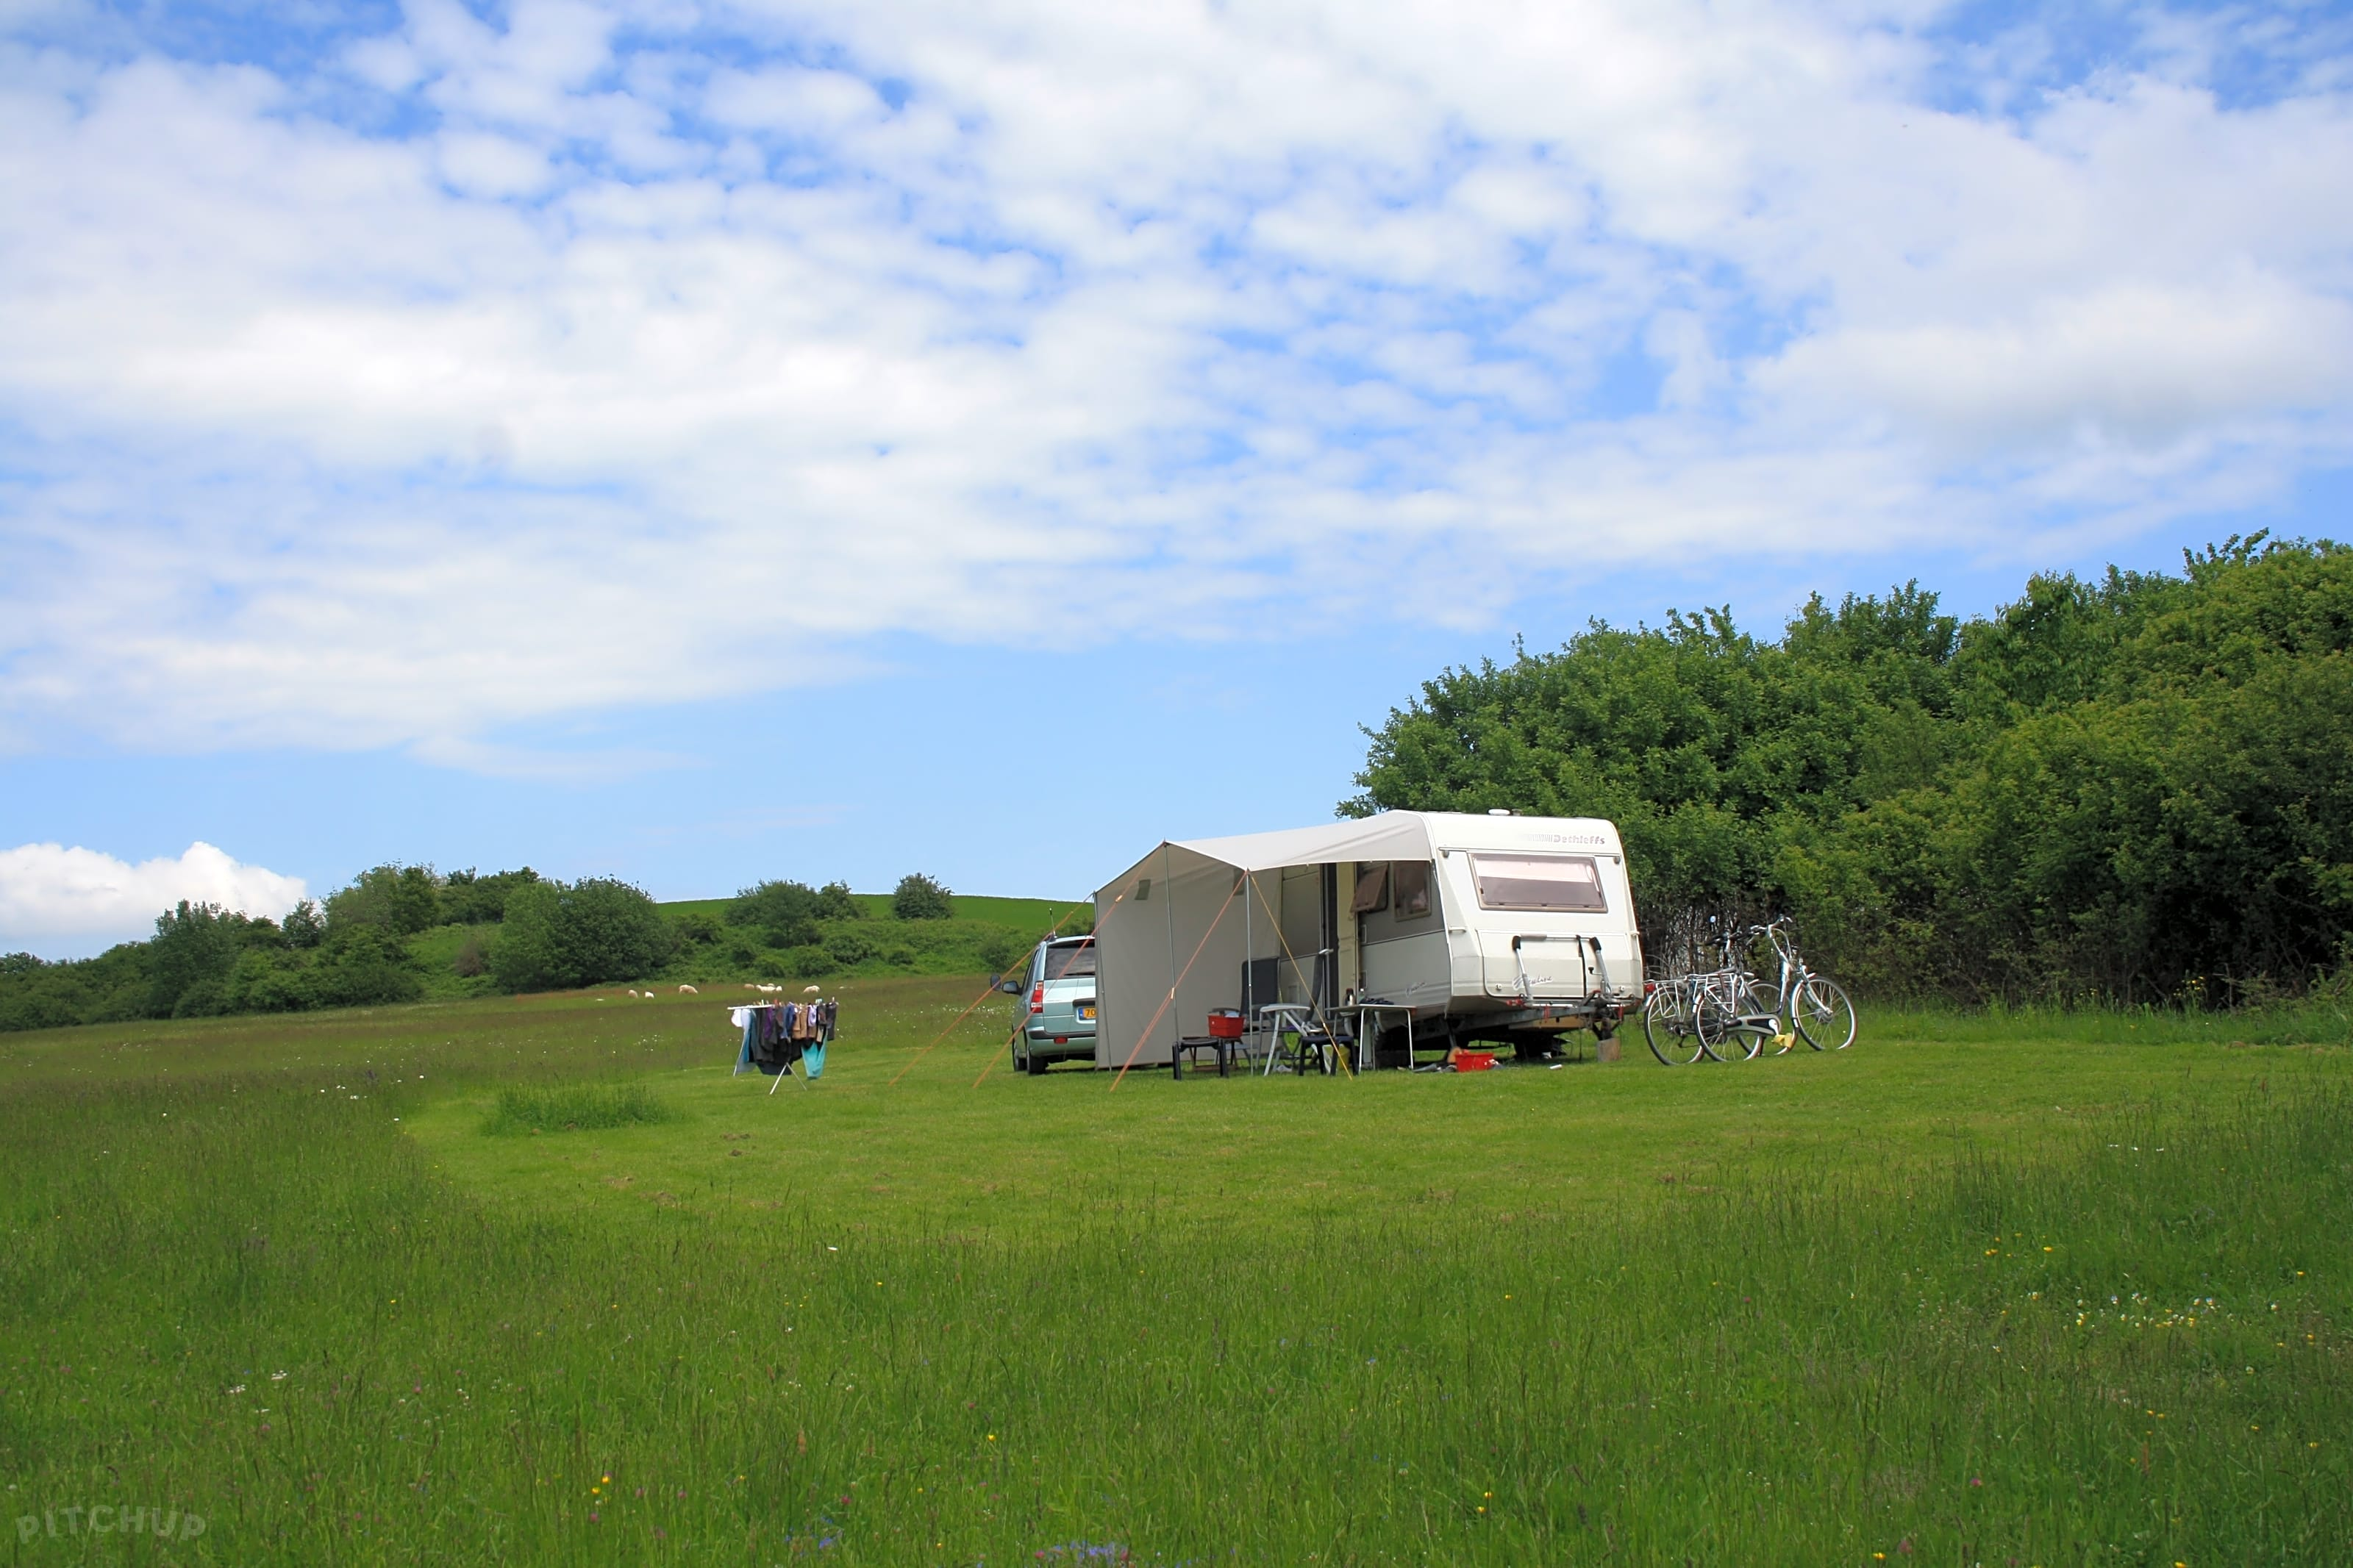 Farm and Camping Lazy, Cerovo - Updated 2019 prices - Pitchup®